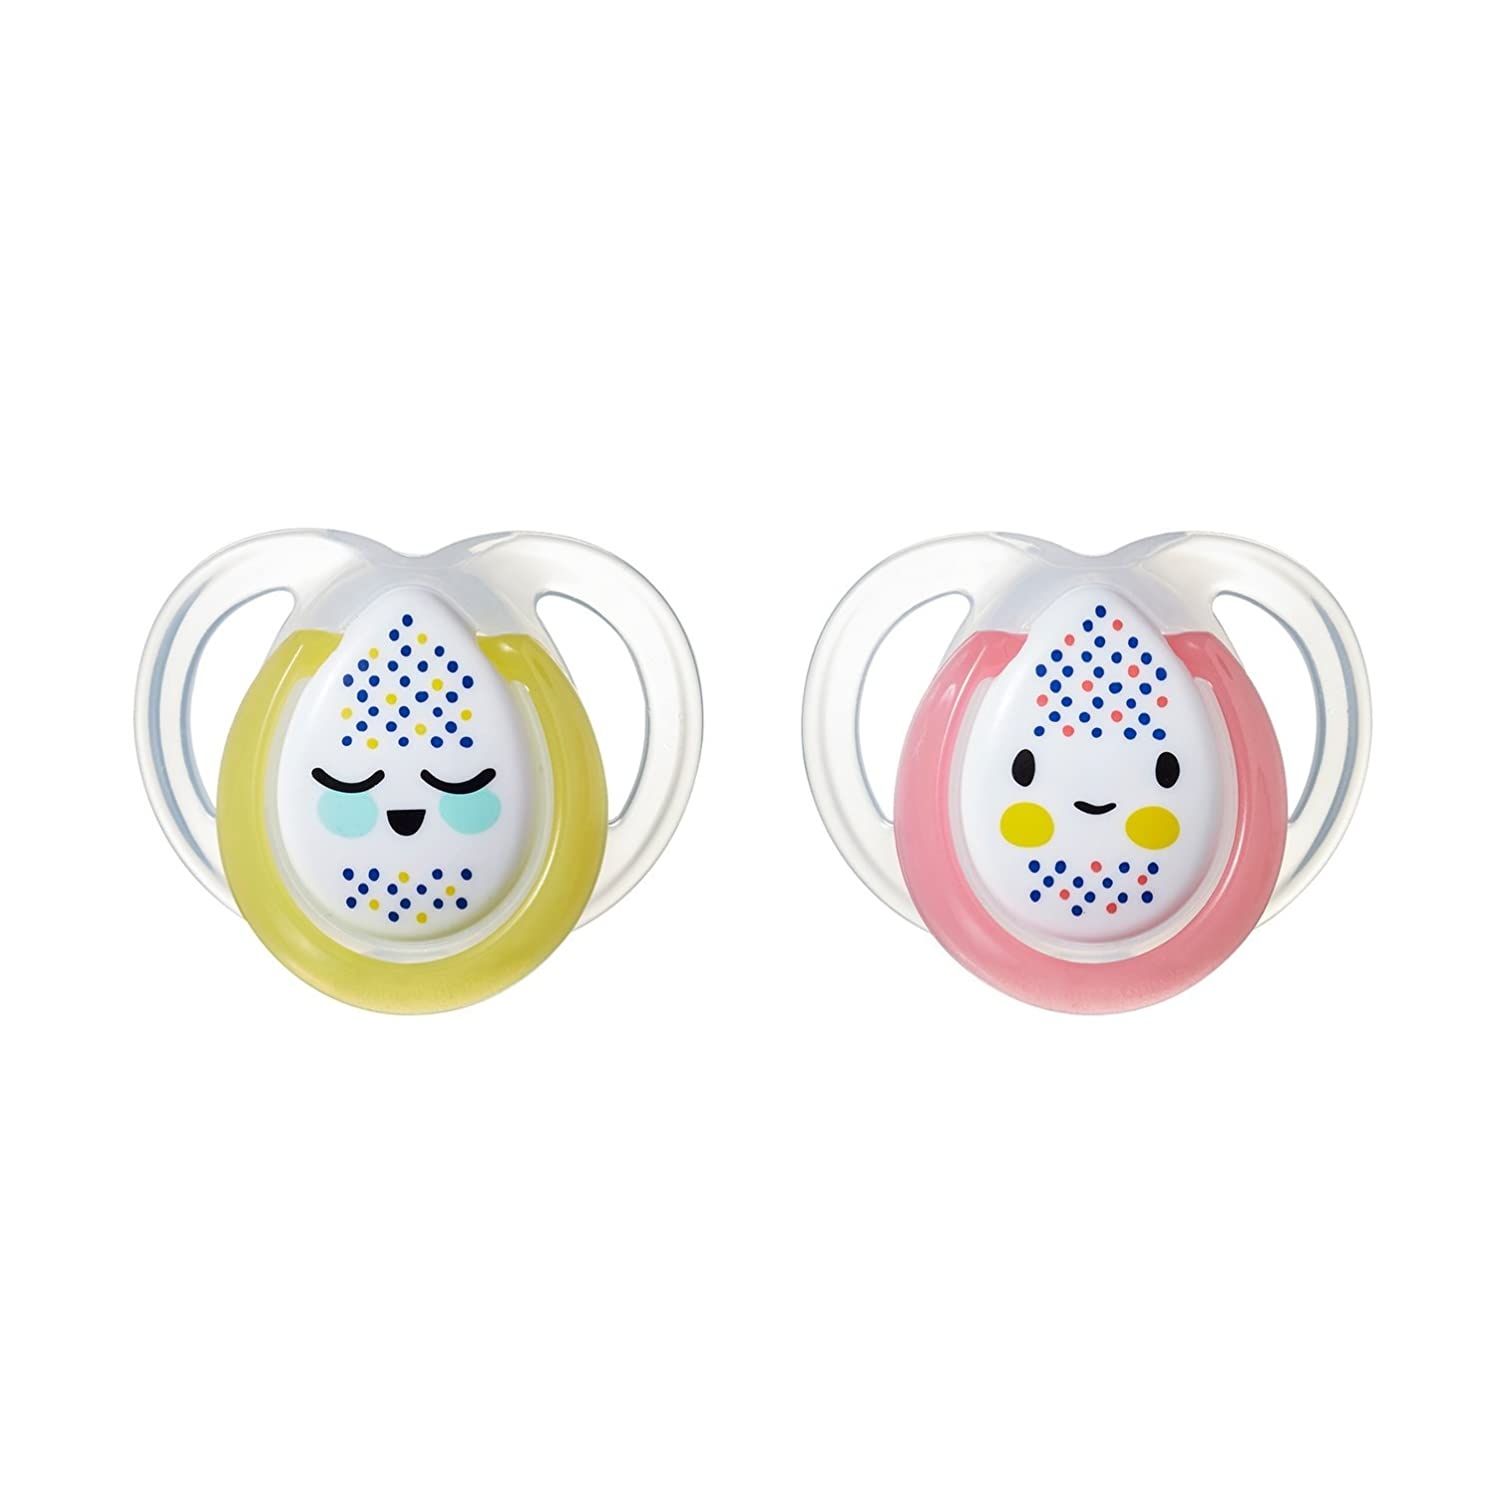 Tommee Tippee Closer to Nature Night Time Newborn Baby Pacifier, 0-6 Months - Unisex, 4 Pack